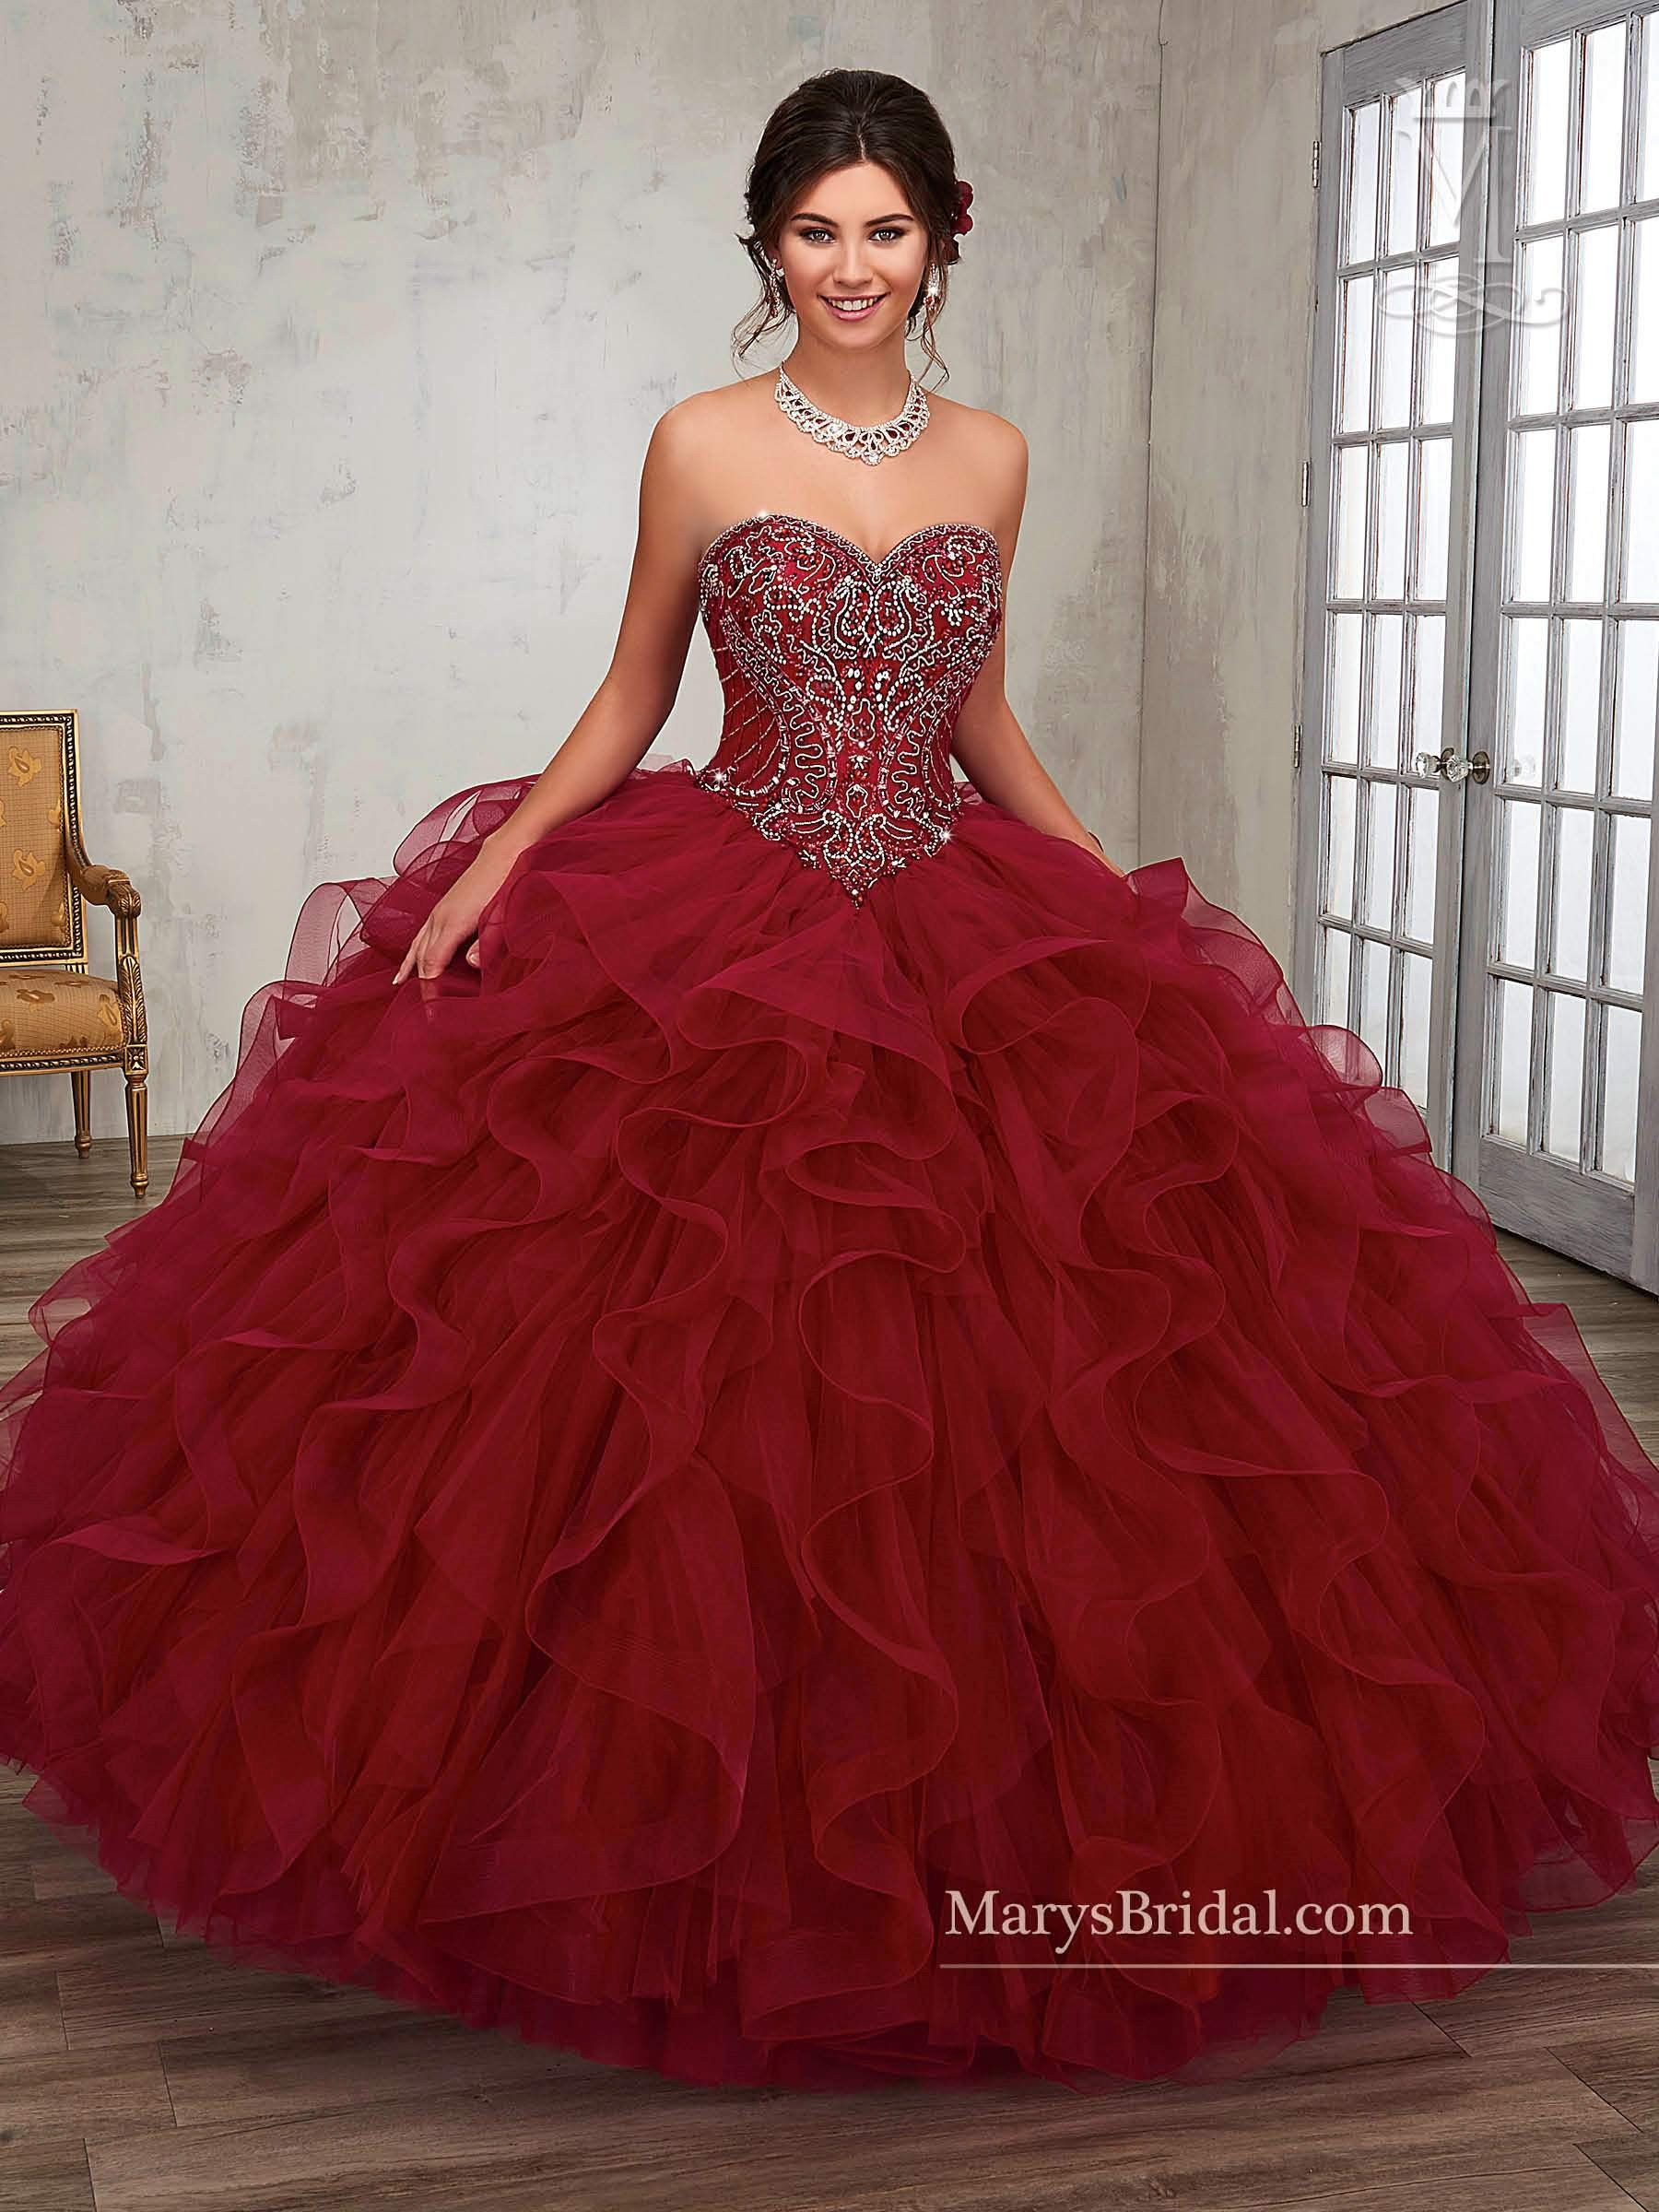 Strapless Ruffled Quinceanera Dress By Mary S Bridal Princess 4q506